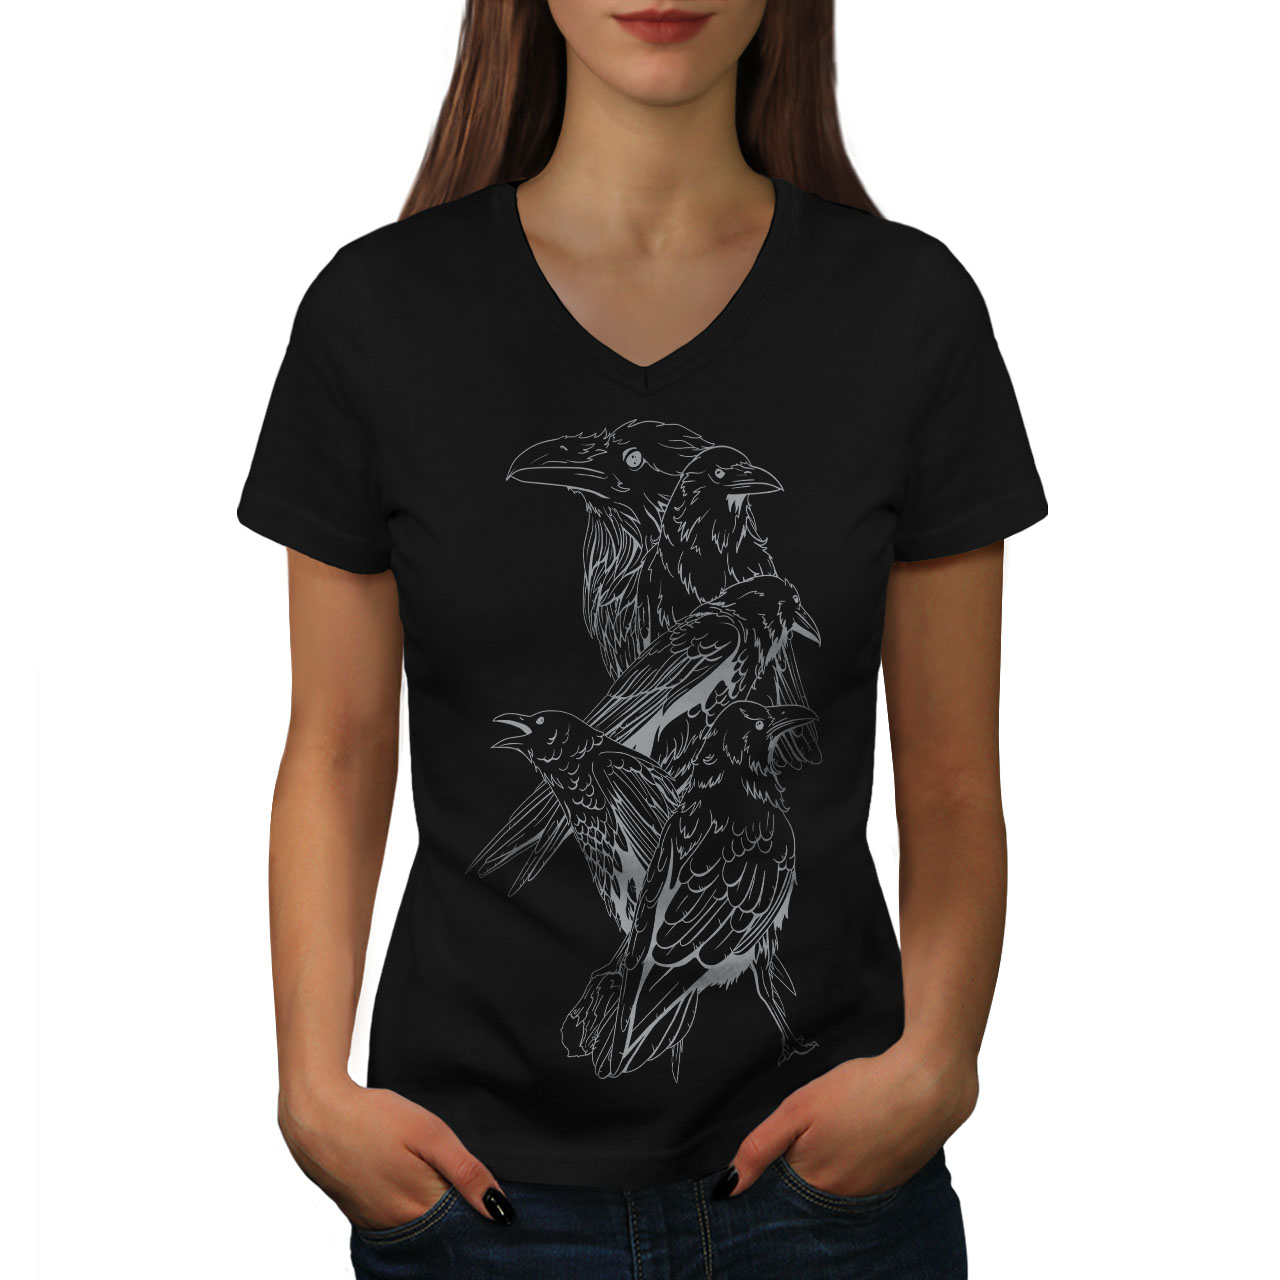 Wellcoda-Four-Scary-Raven-Womens-V-Neck-T-shirt-Crow-Birds-Graphic-Design-Tee thumbnail 3